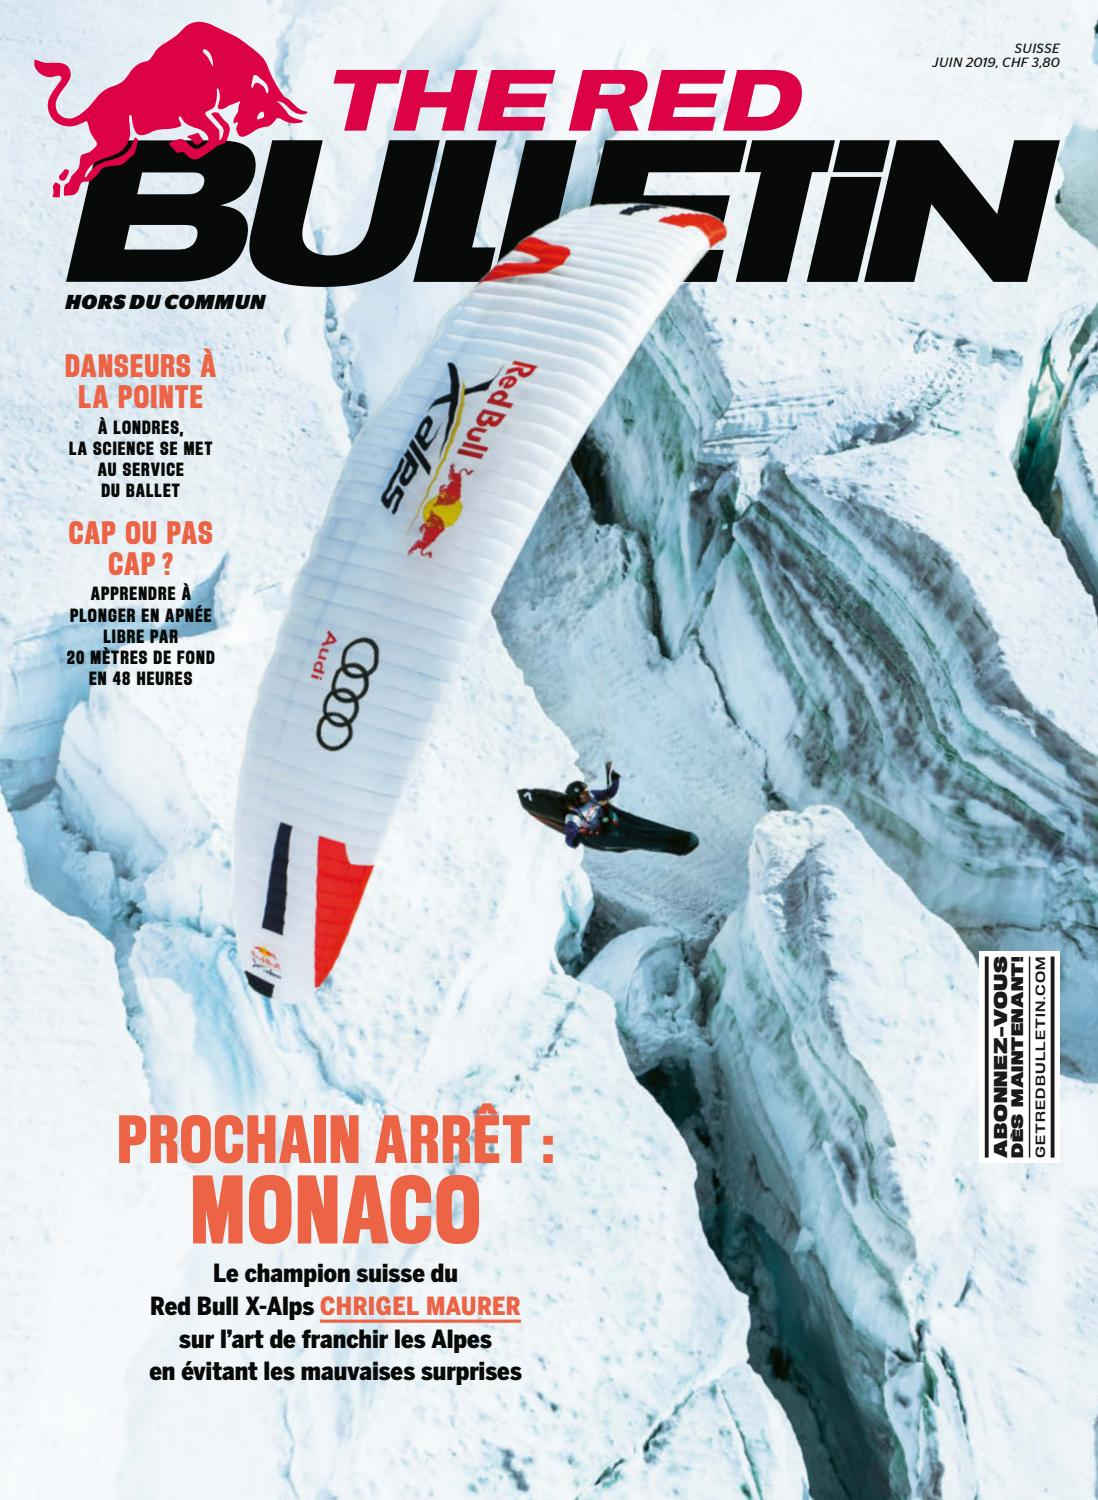 The Red Bulletin 0619 CF by Red Bull Media House issuu